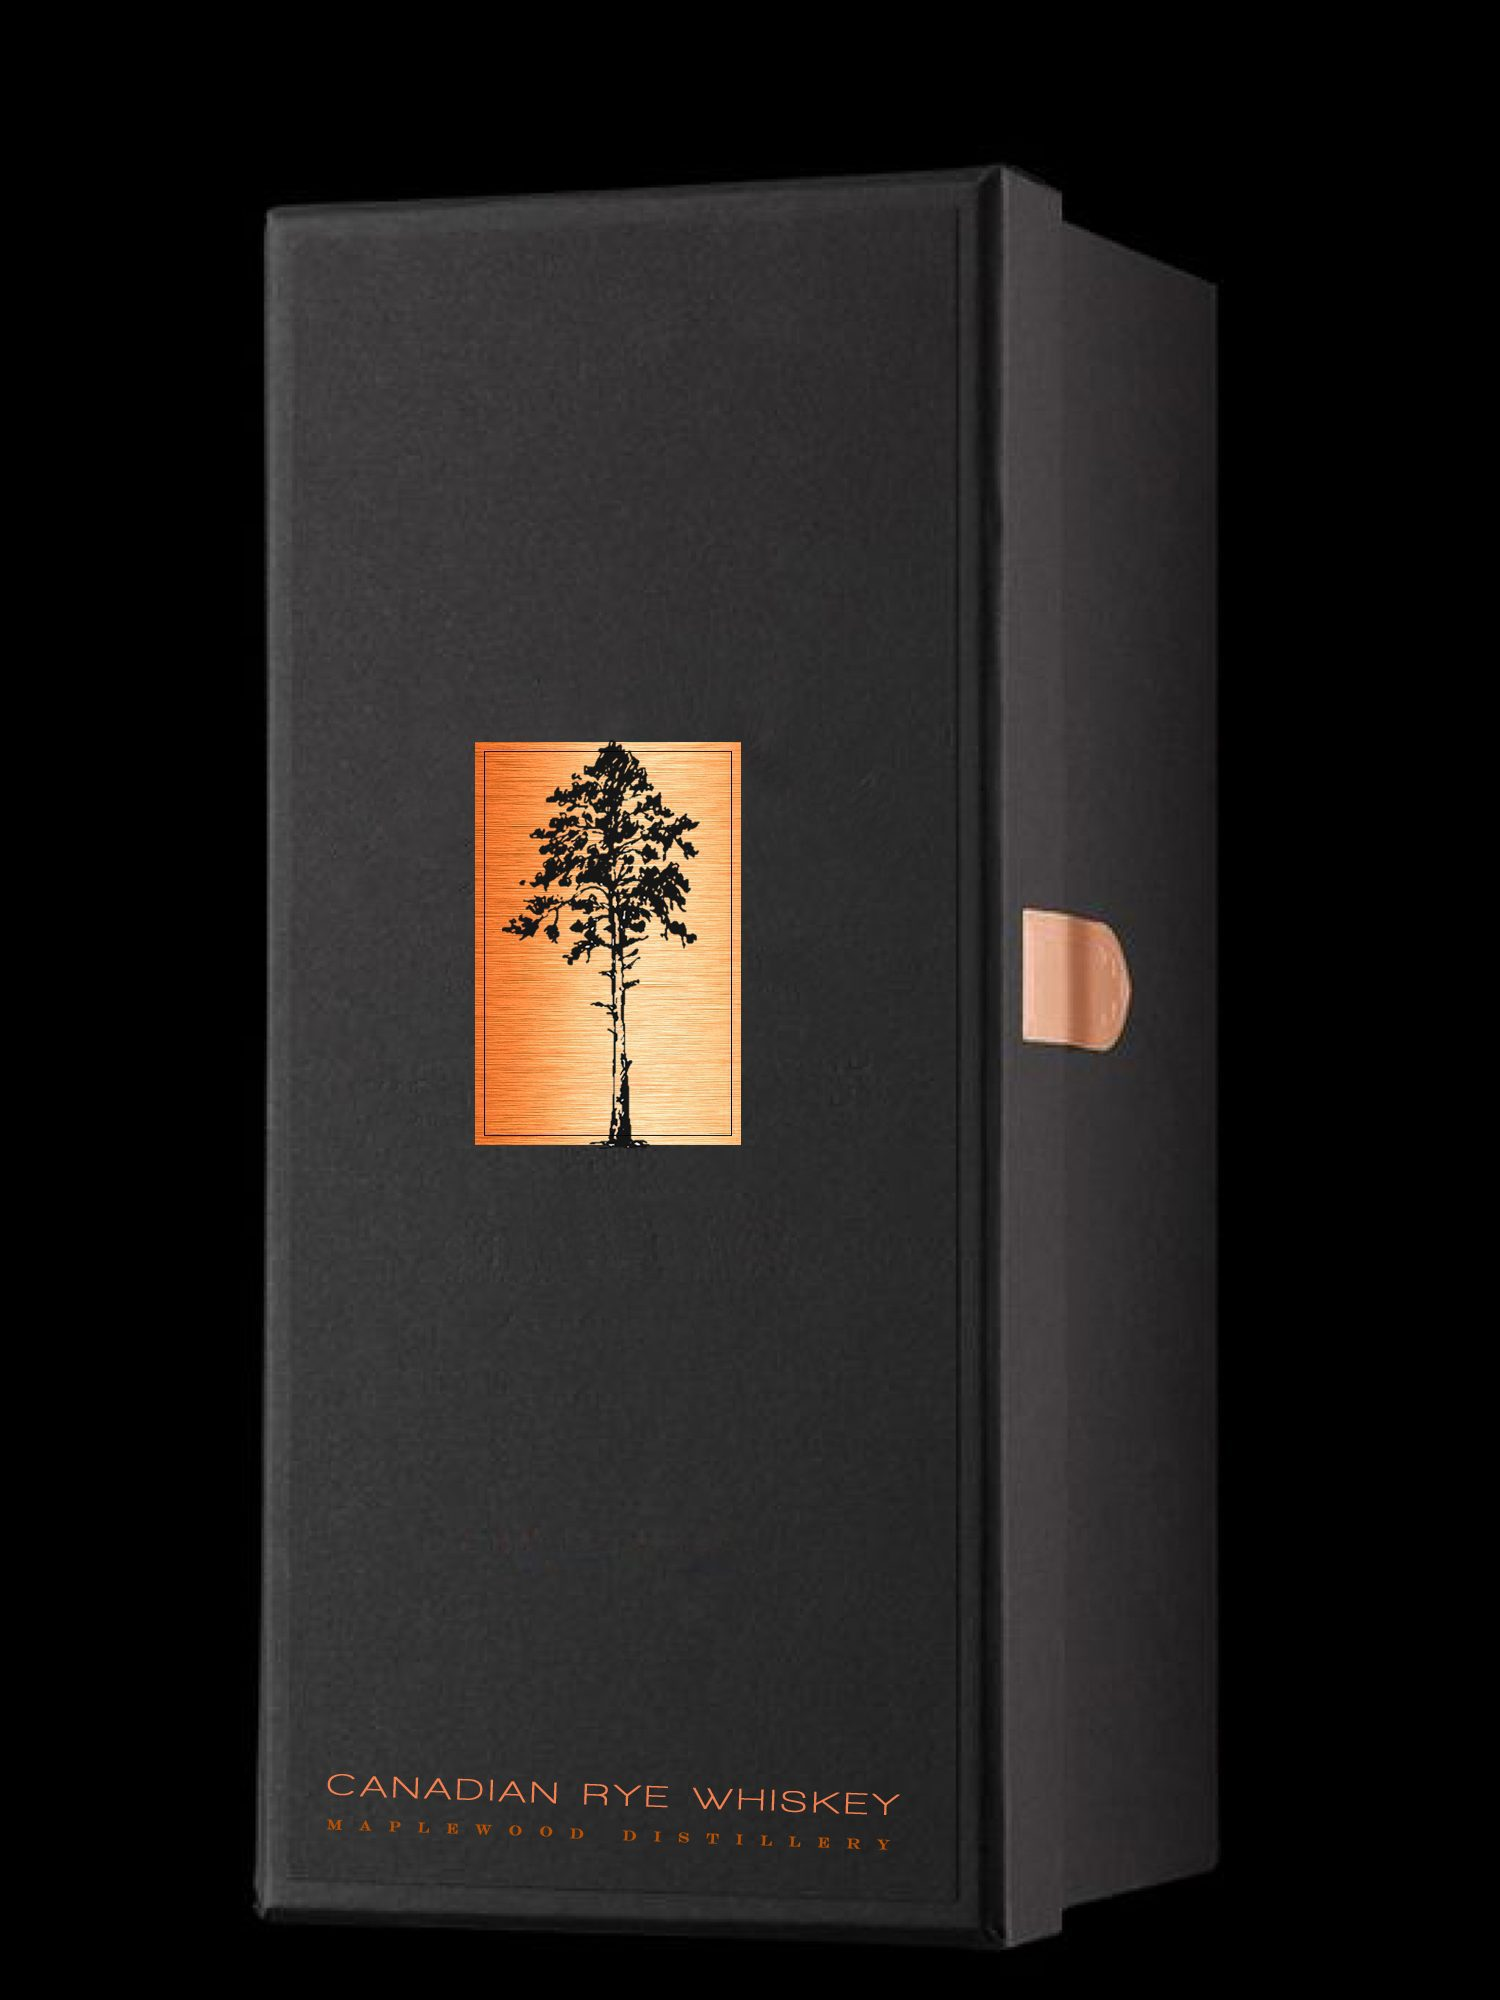 Oliver-Spence-Maplewood-Distillery-Packaging-outside